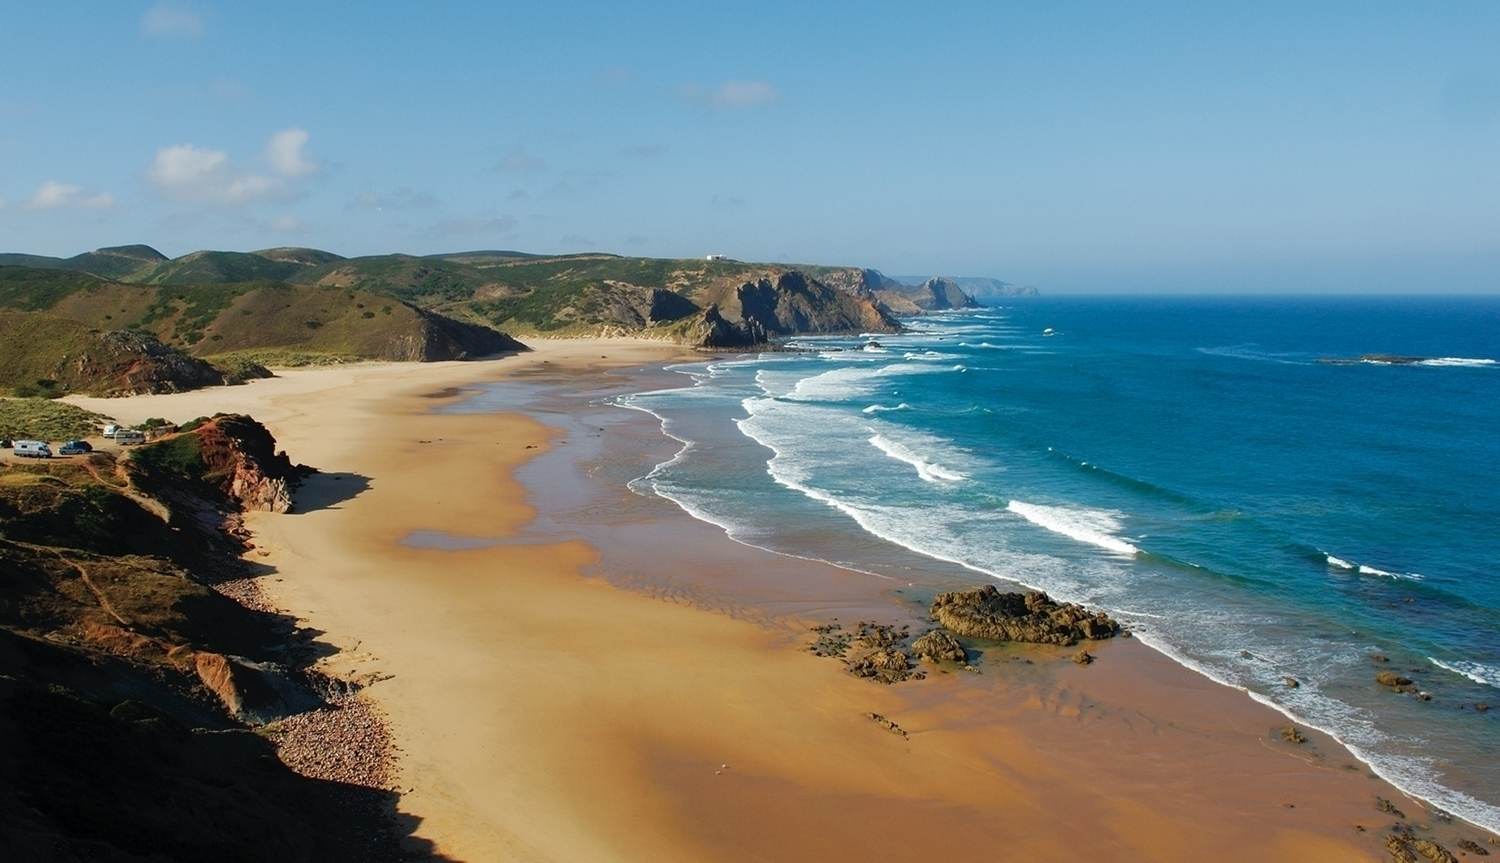 The Top 7 surf beaches in the Algarve, Portugal